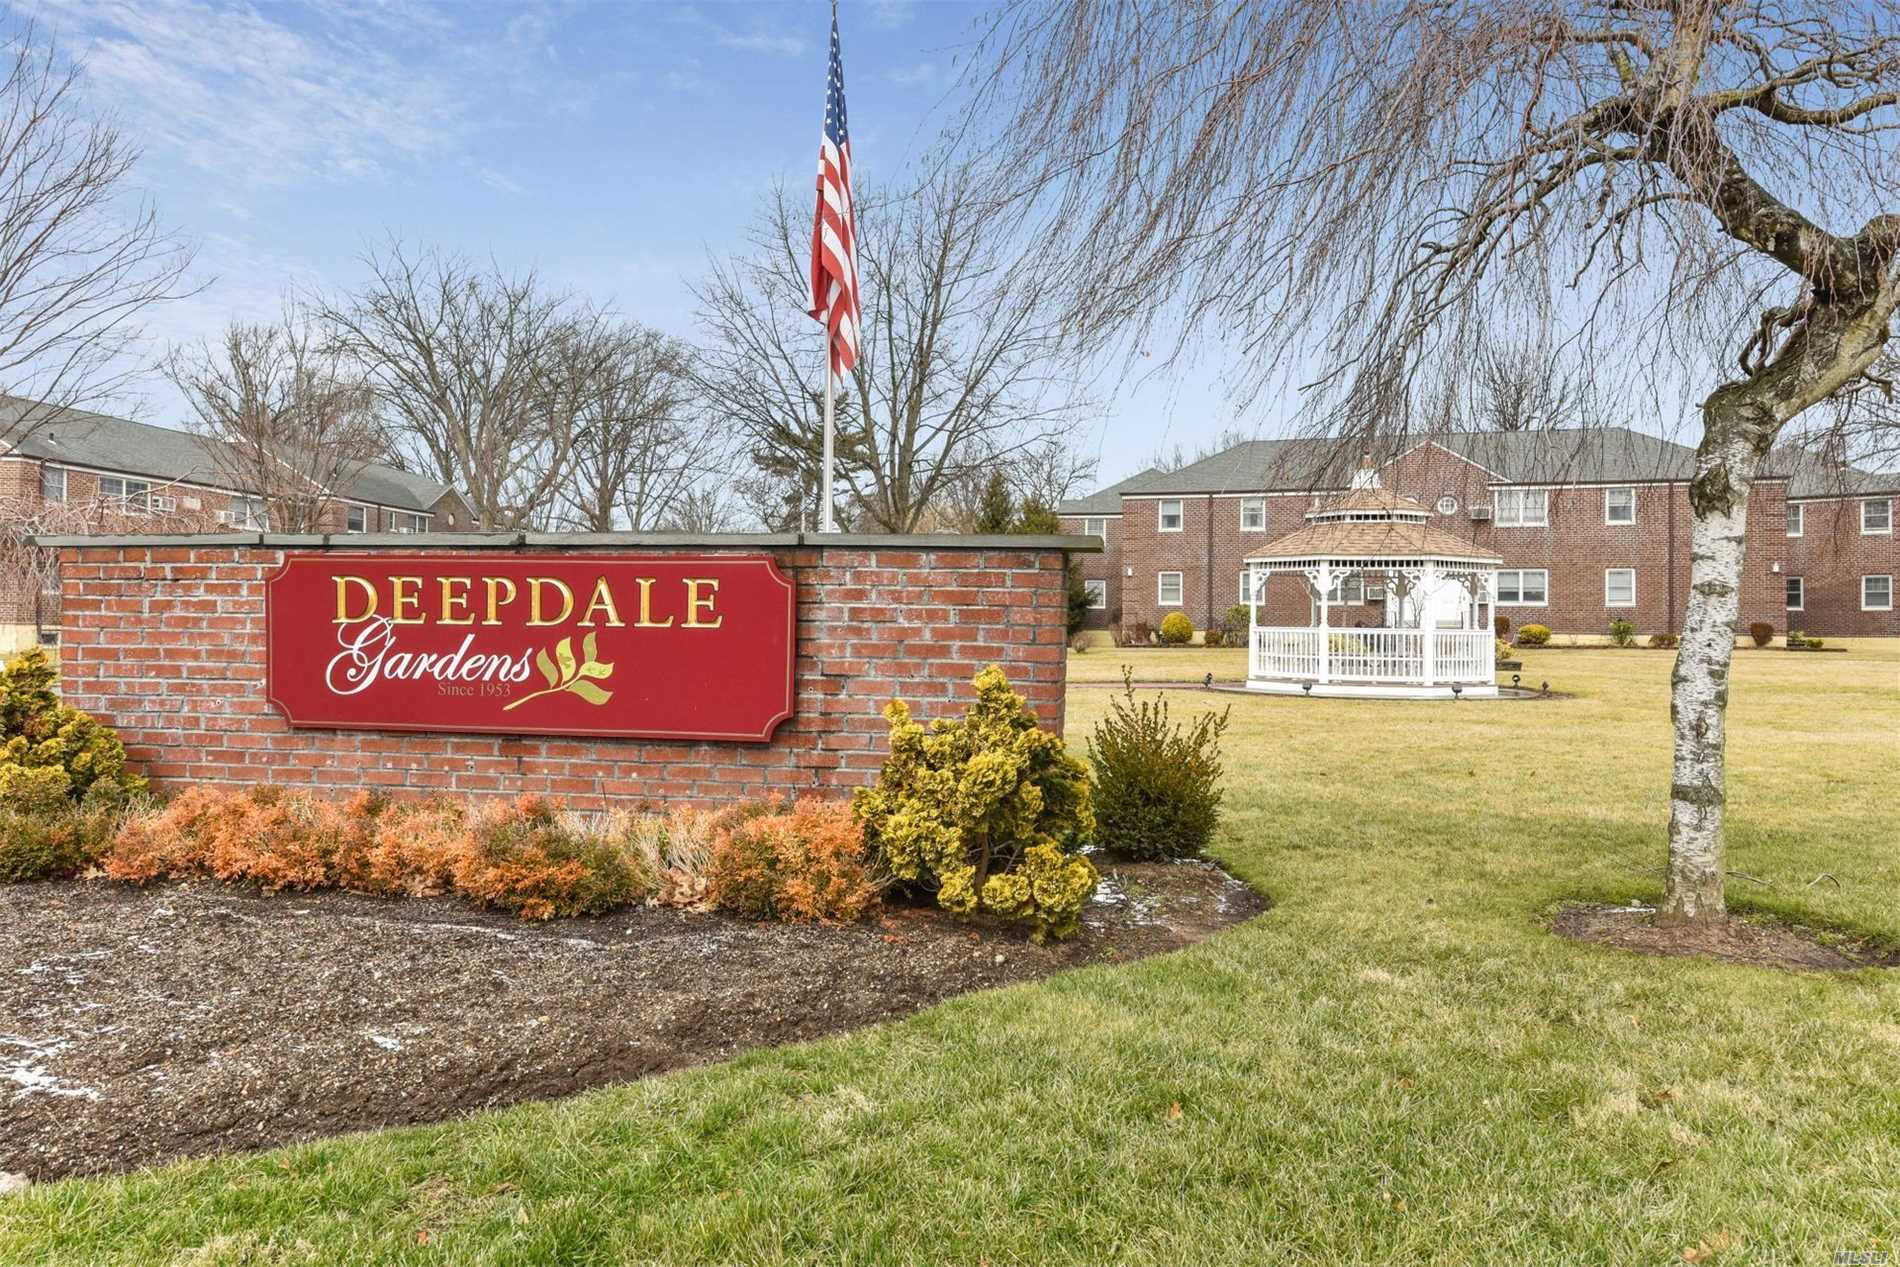 Largest 3 Bedroom/1 Bath/Corner/First Floor Unit/Waster-Dryer In Apartment/Make This Co-Op Your Own!/Beautifully Situated Near Little Neck Parkway With Express Bus To Nyc/Bus To Little Neck Lirr/Deepdale Gardens Is Known For It's Easy Livability/Low Monthly Of Only $933 Includes: Electric, Heat, Hot Water, Washer-Dryer + You Get 2 Parking Permits/Appliance Fee Depends On Unit/Have An Eye For Design? You've Found Your Gem In The Rough!/Apt Sold As-Is/Won't Last So Hurry!